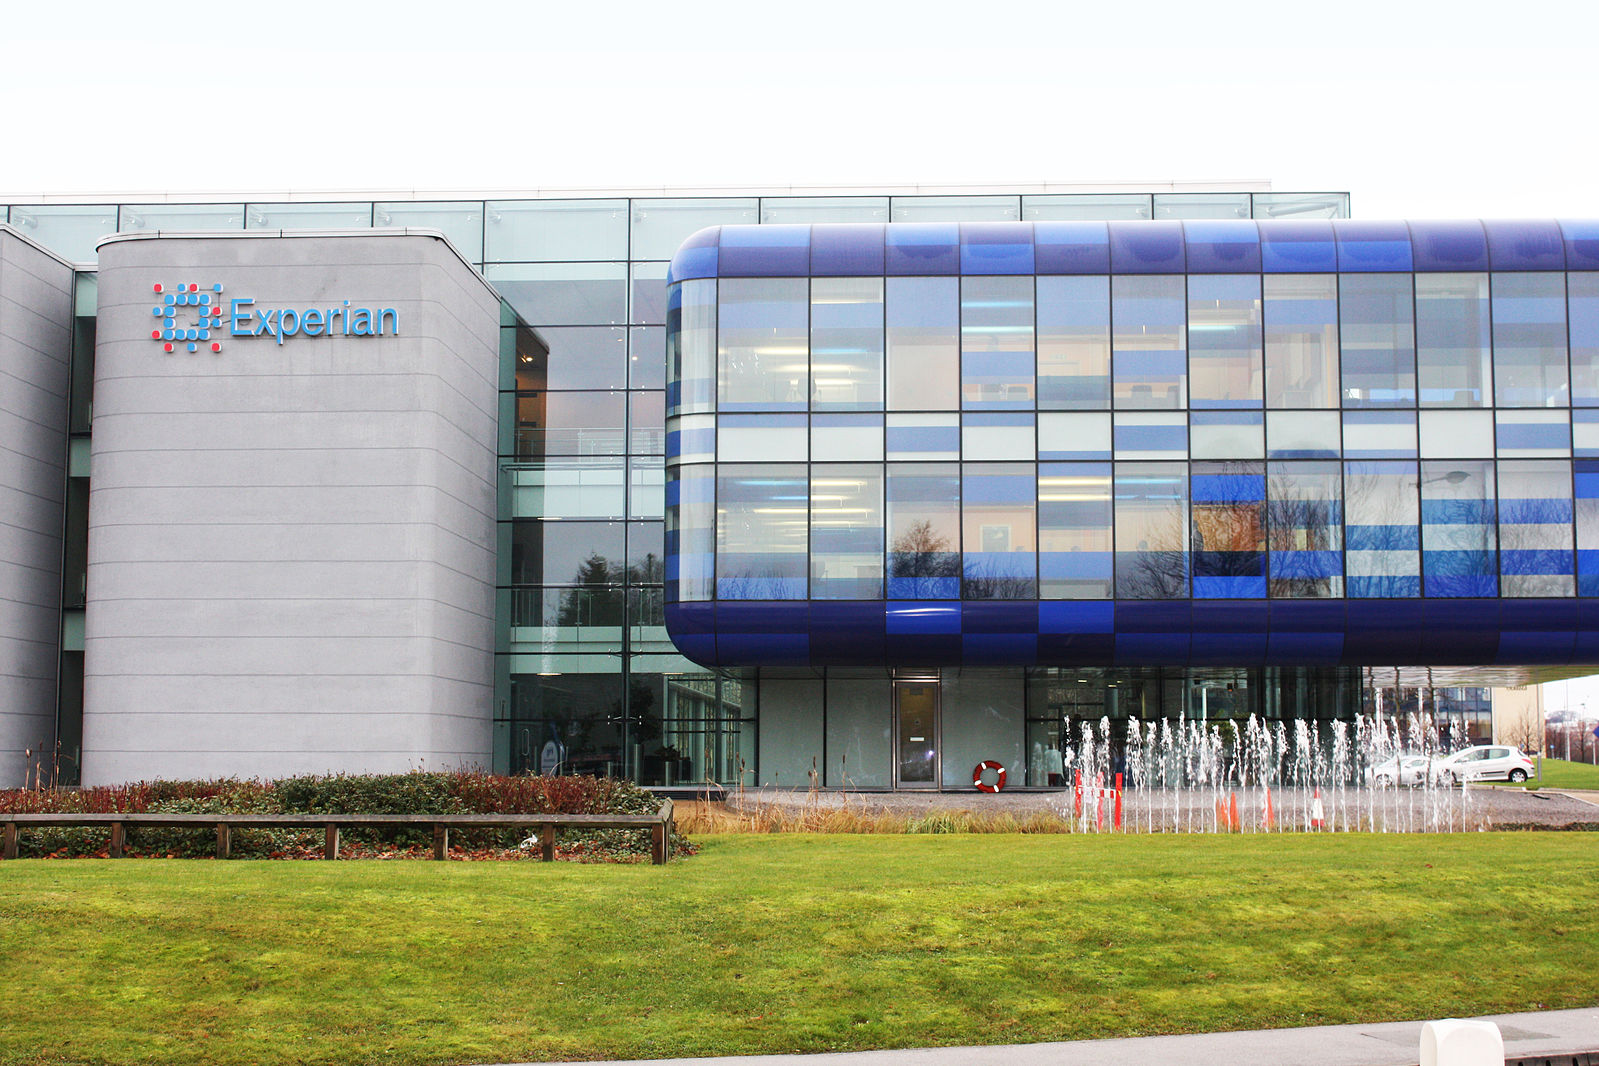 Experian headquarters in the UK